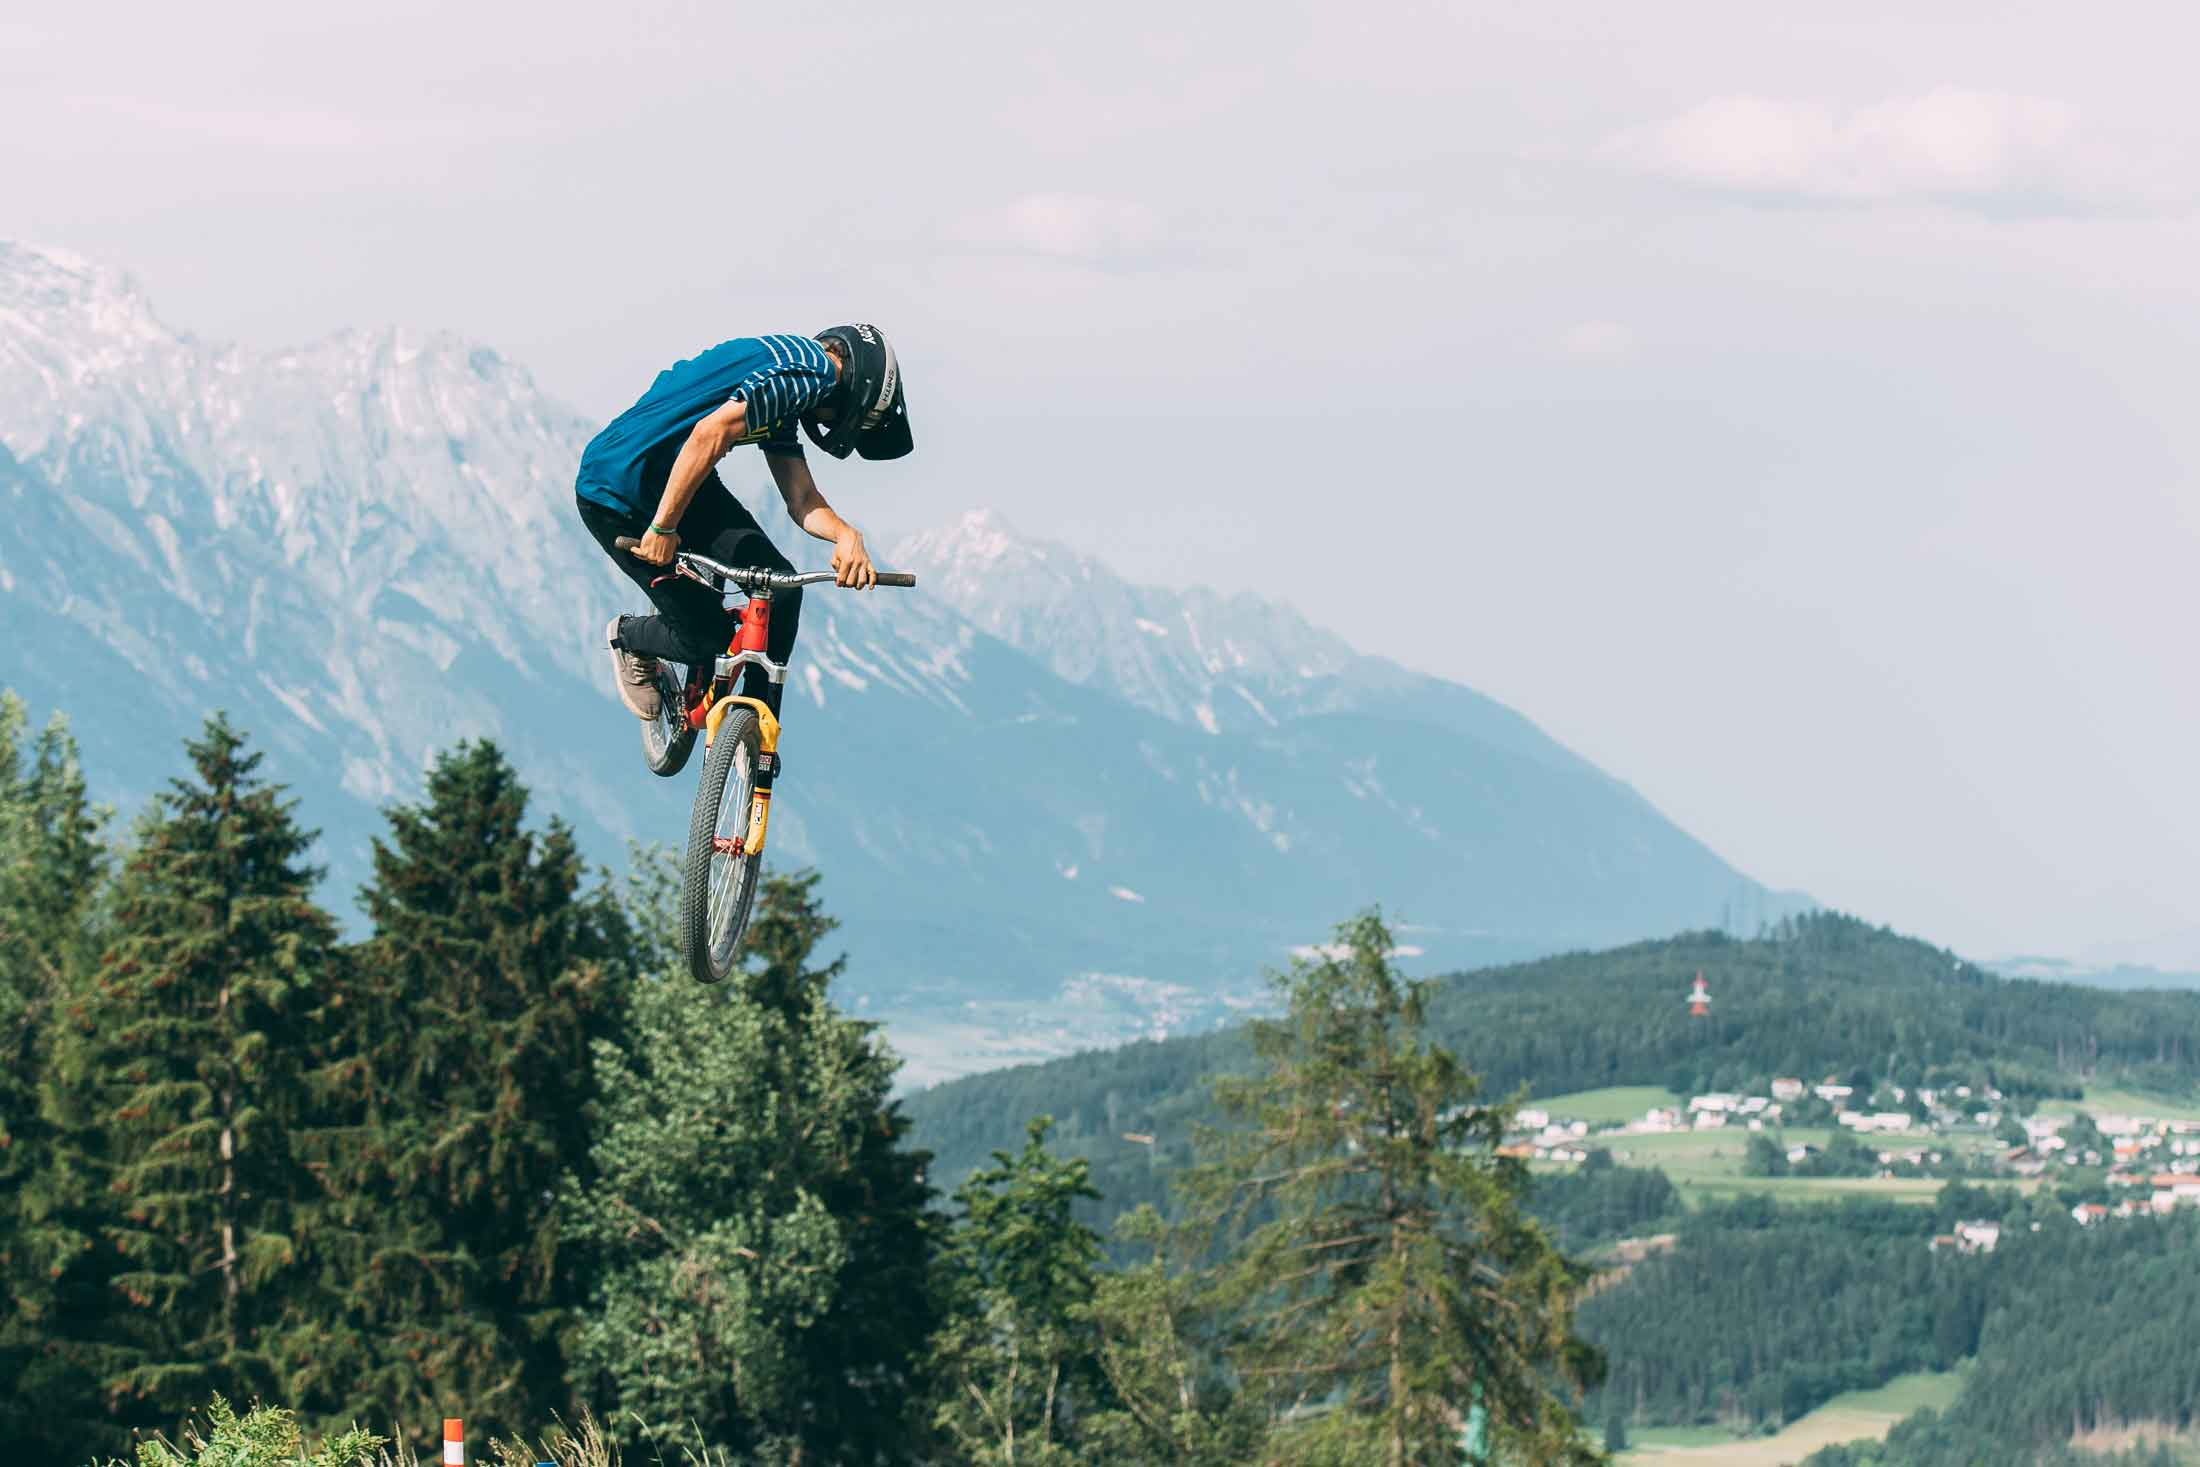 Peter Kaiser at the Mons Royale Speed and Style at Crankworx Innsbruck